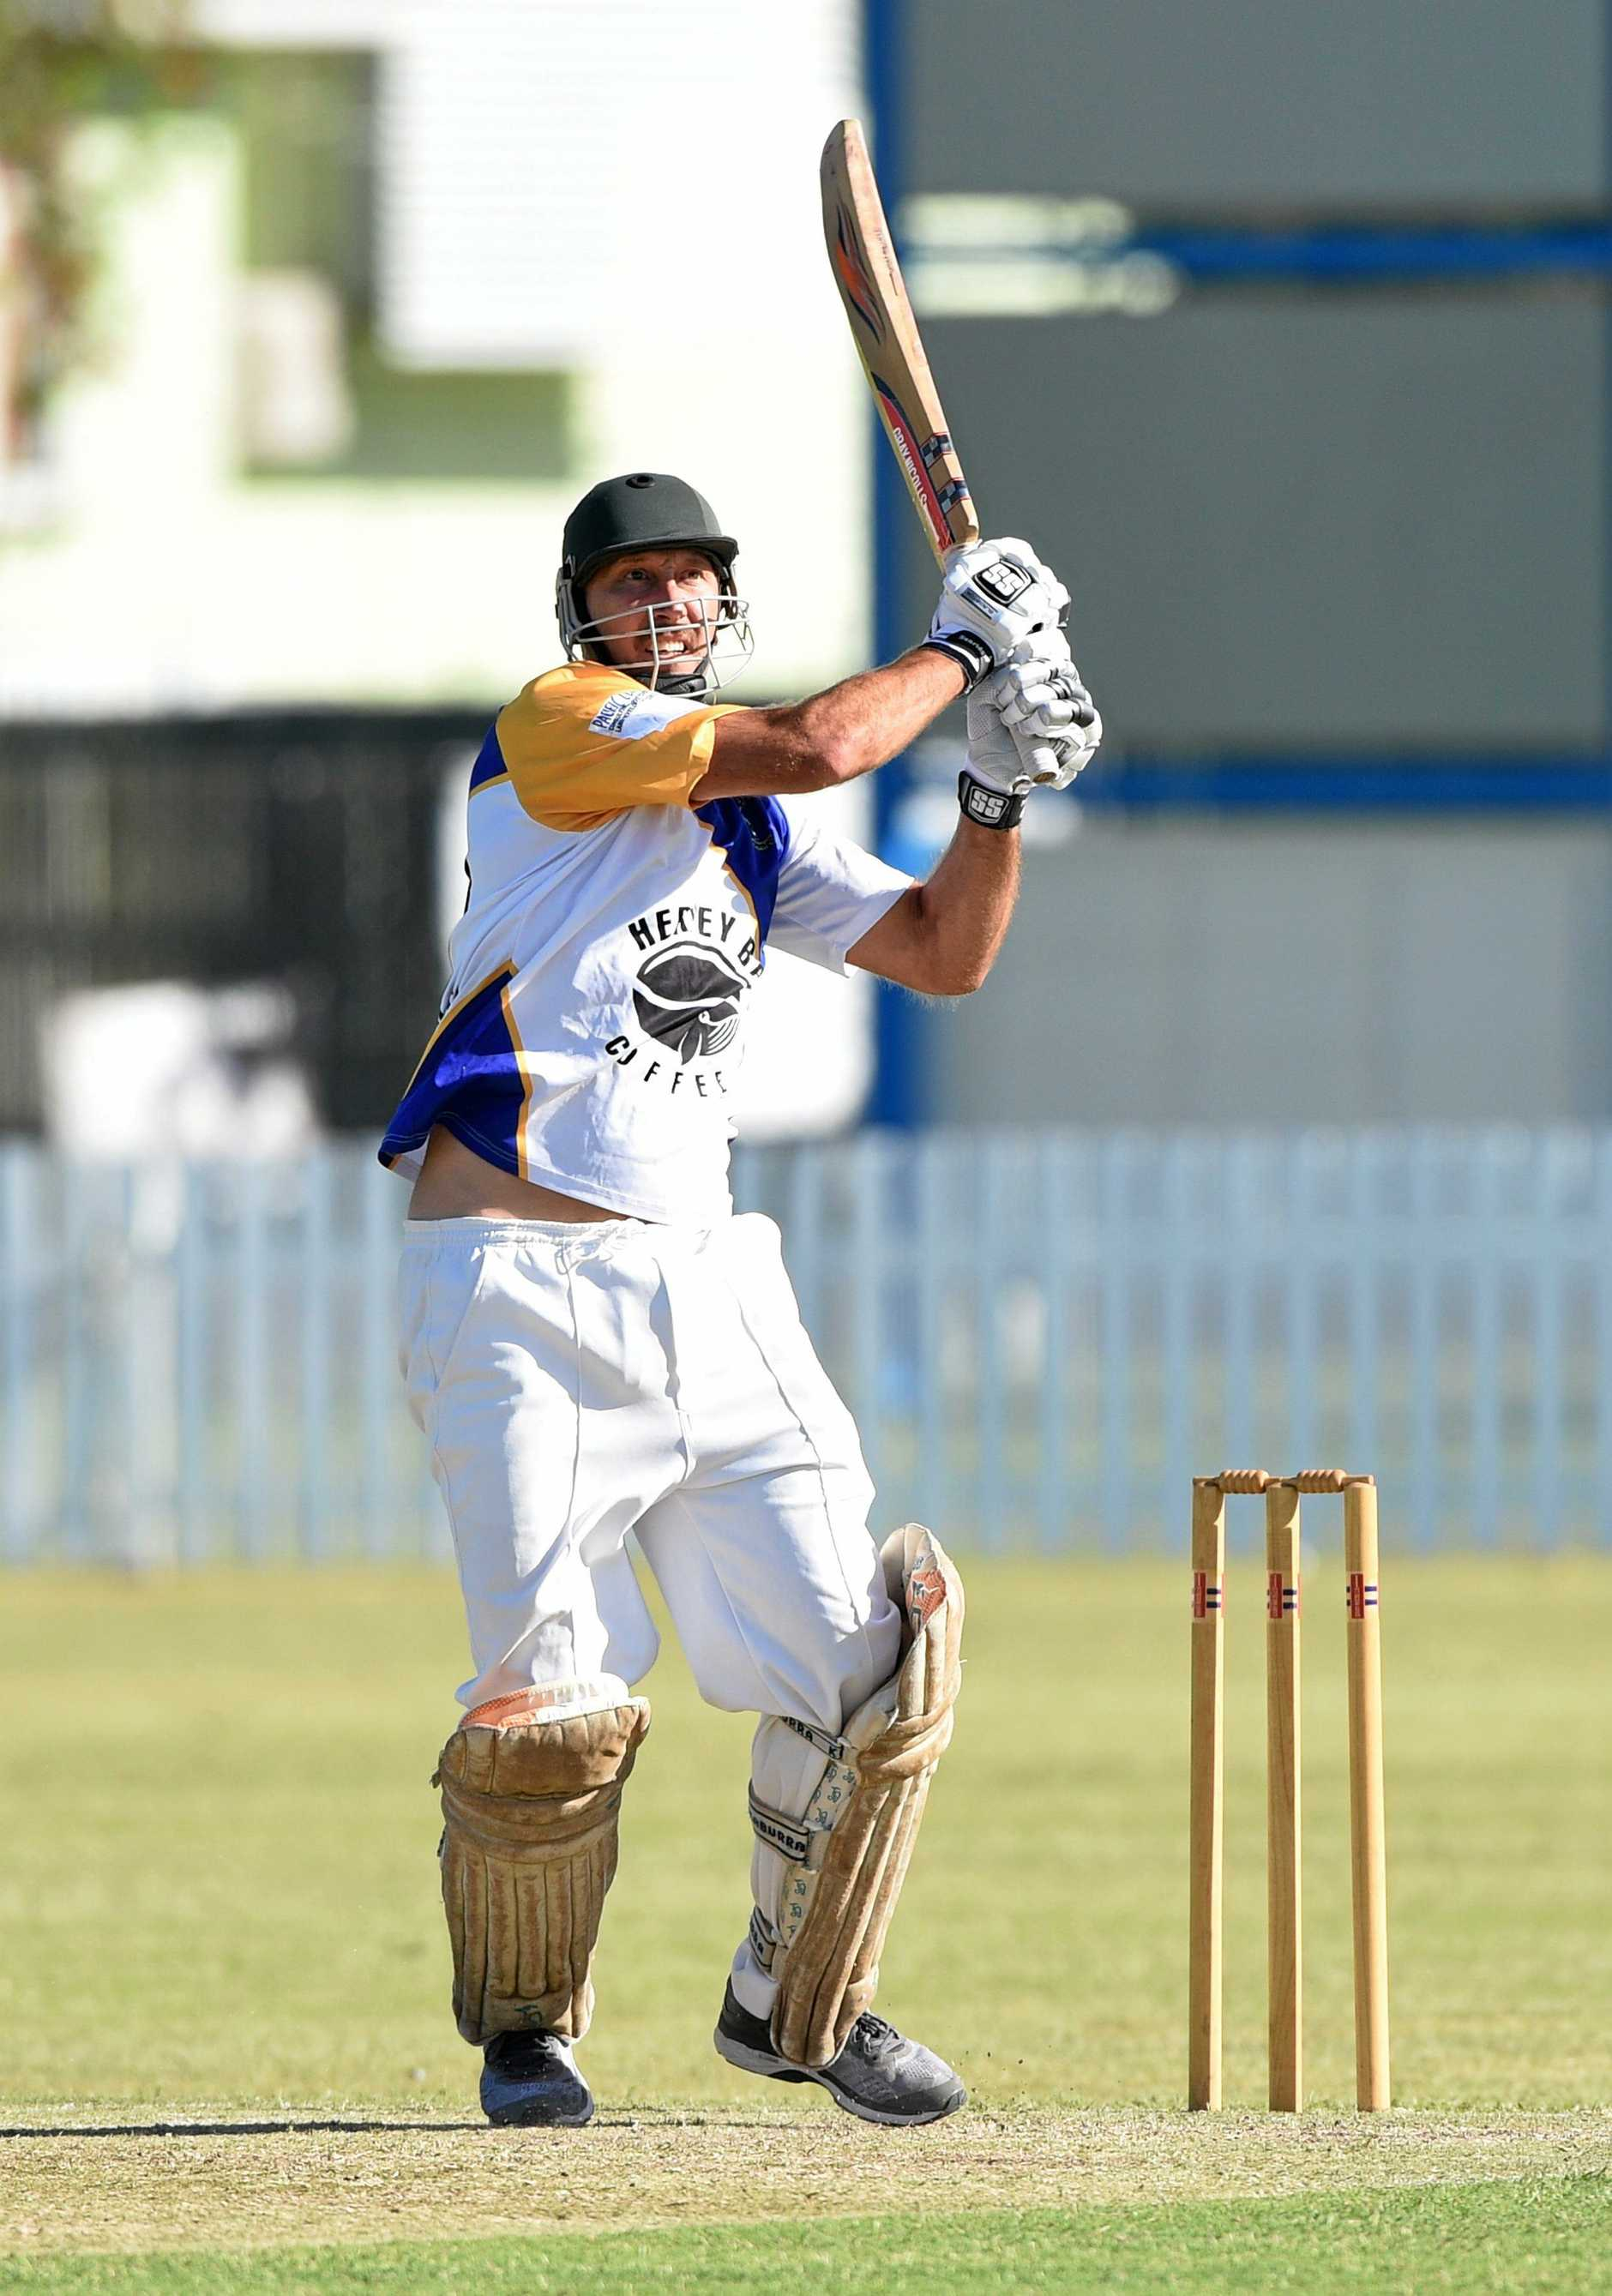 SMASHERS: Bushrangers batsman Brent Dean is the only A-grade player to have scored a century this season. Can he replicate that form when the T20s start?